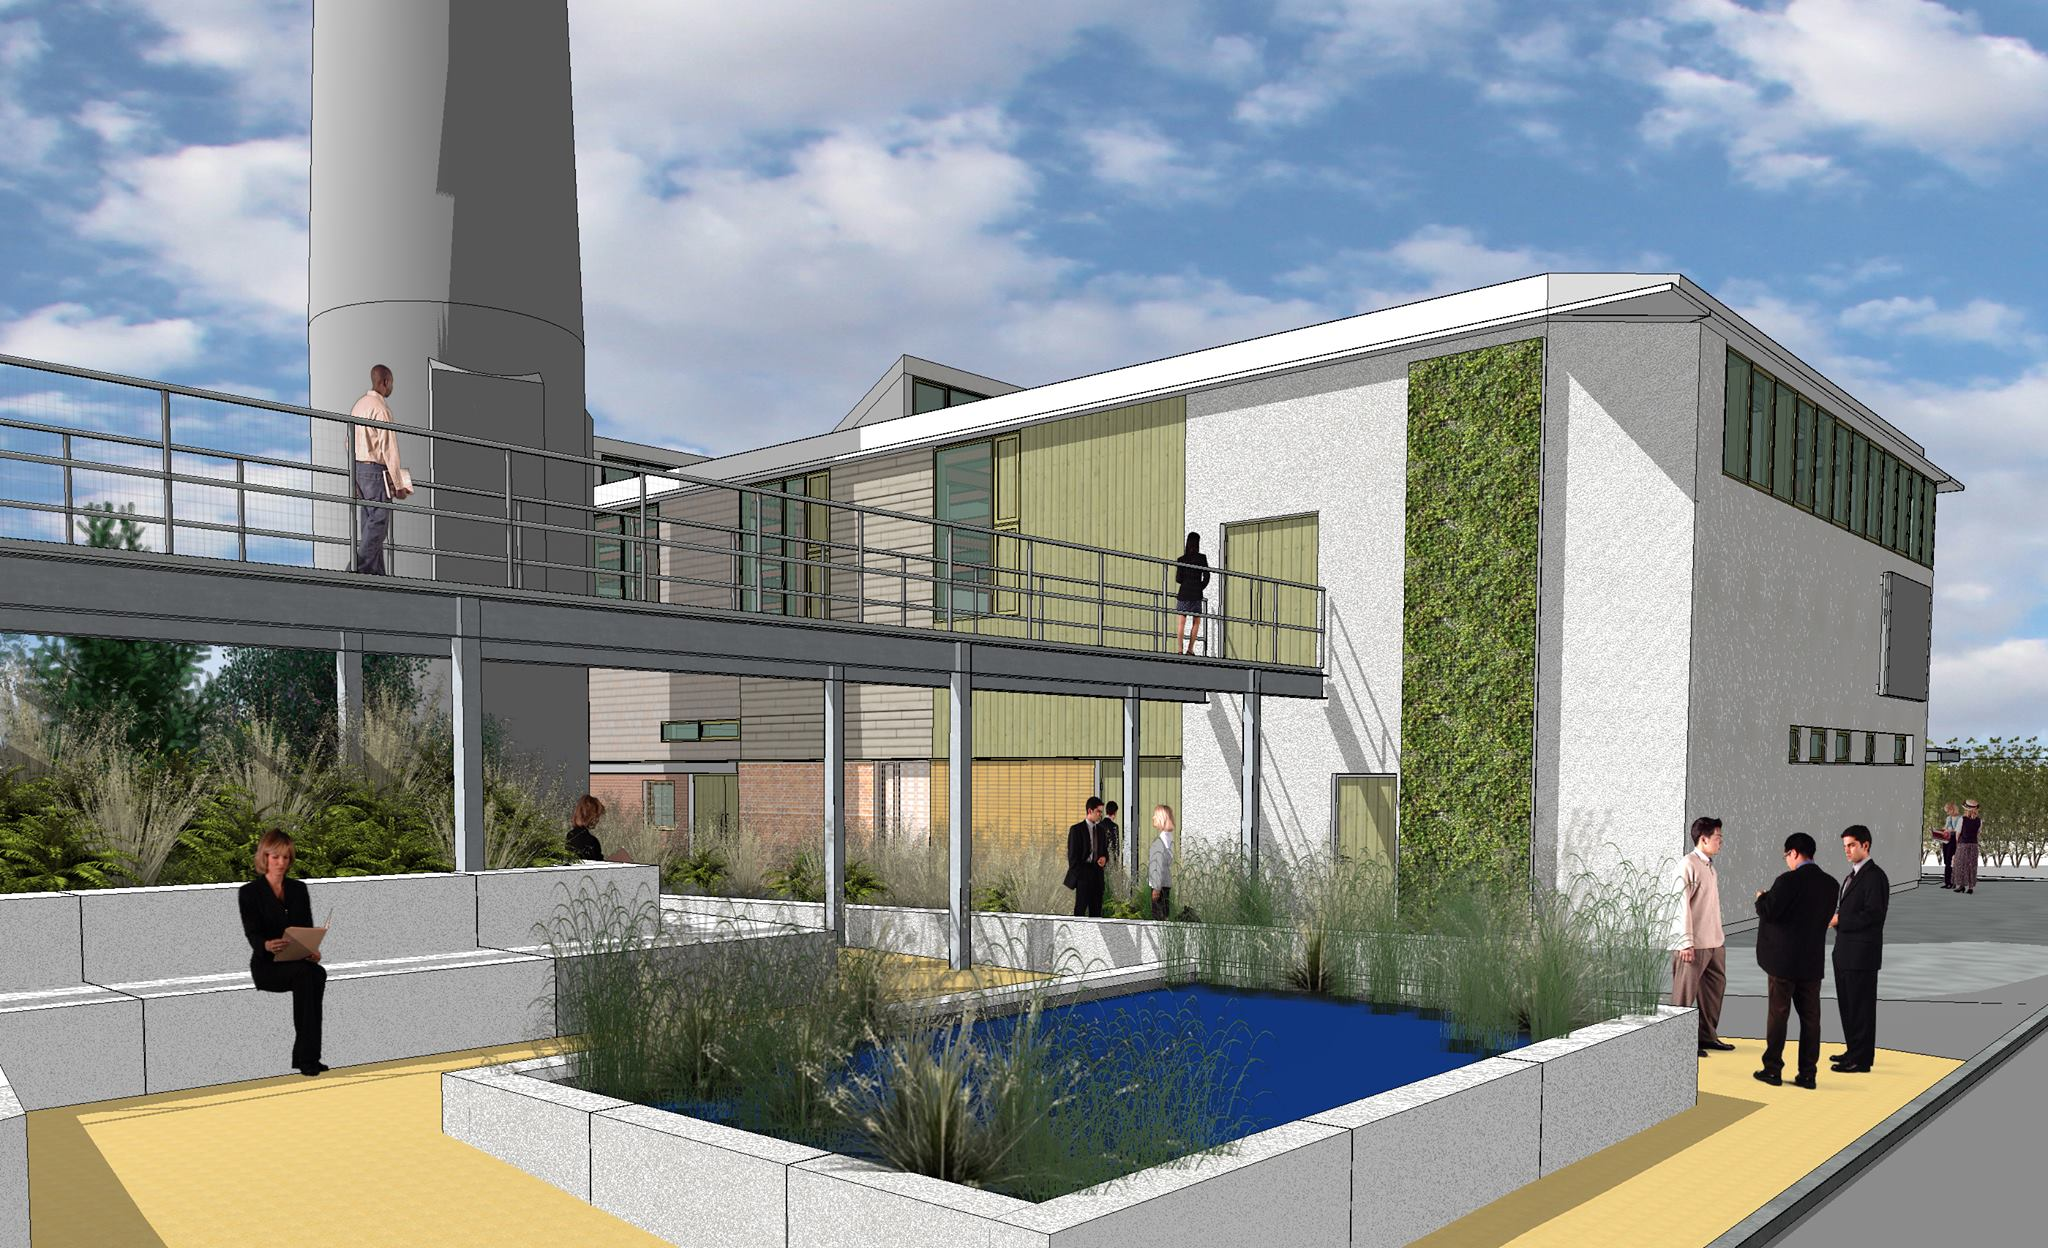 Artist's impression of the final building by ABK Architects.